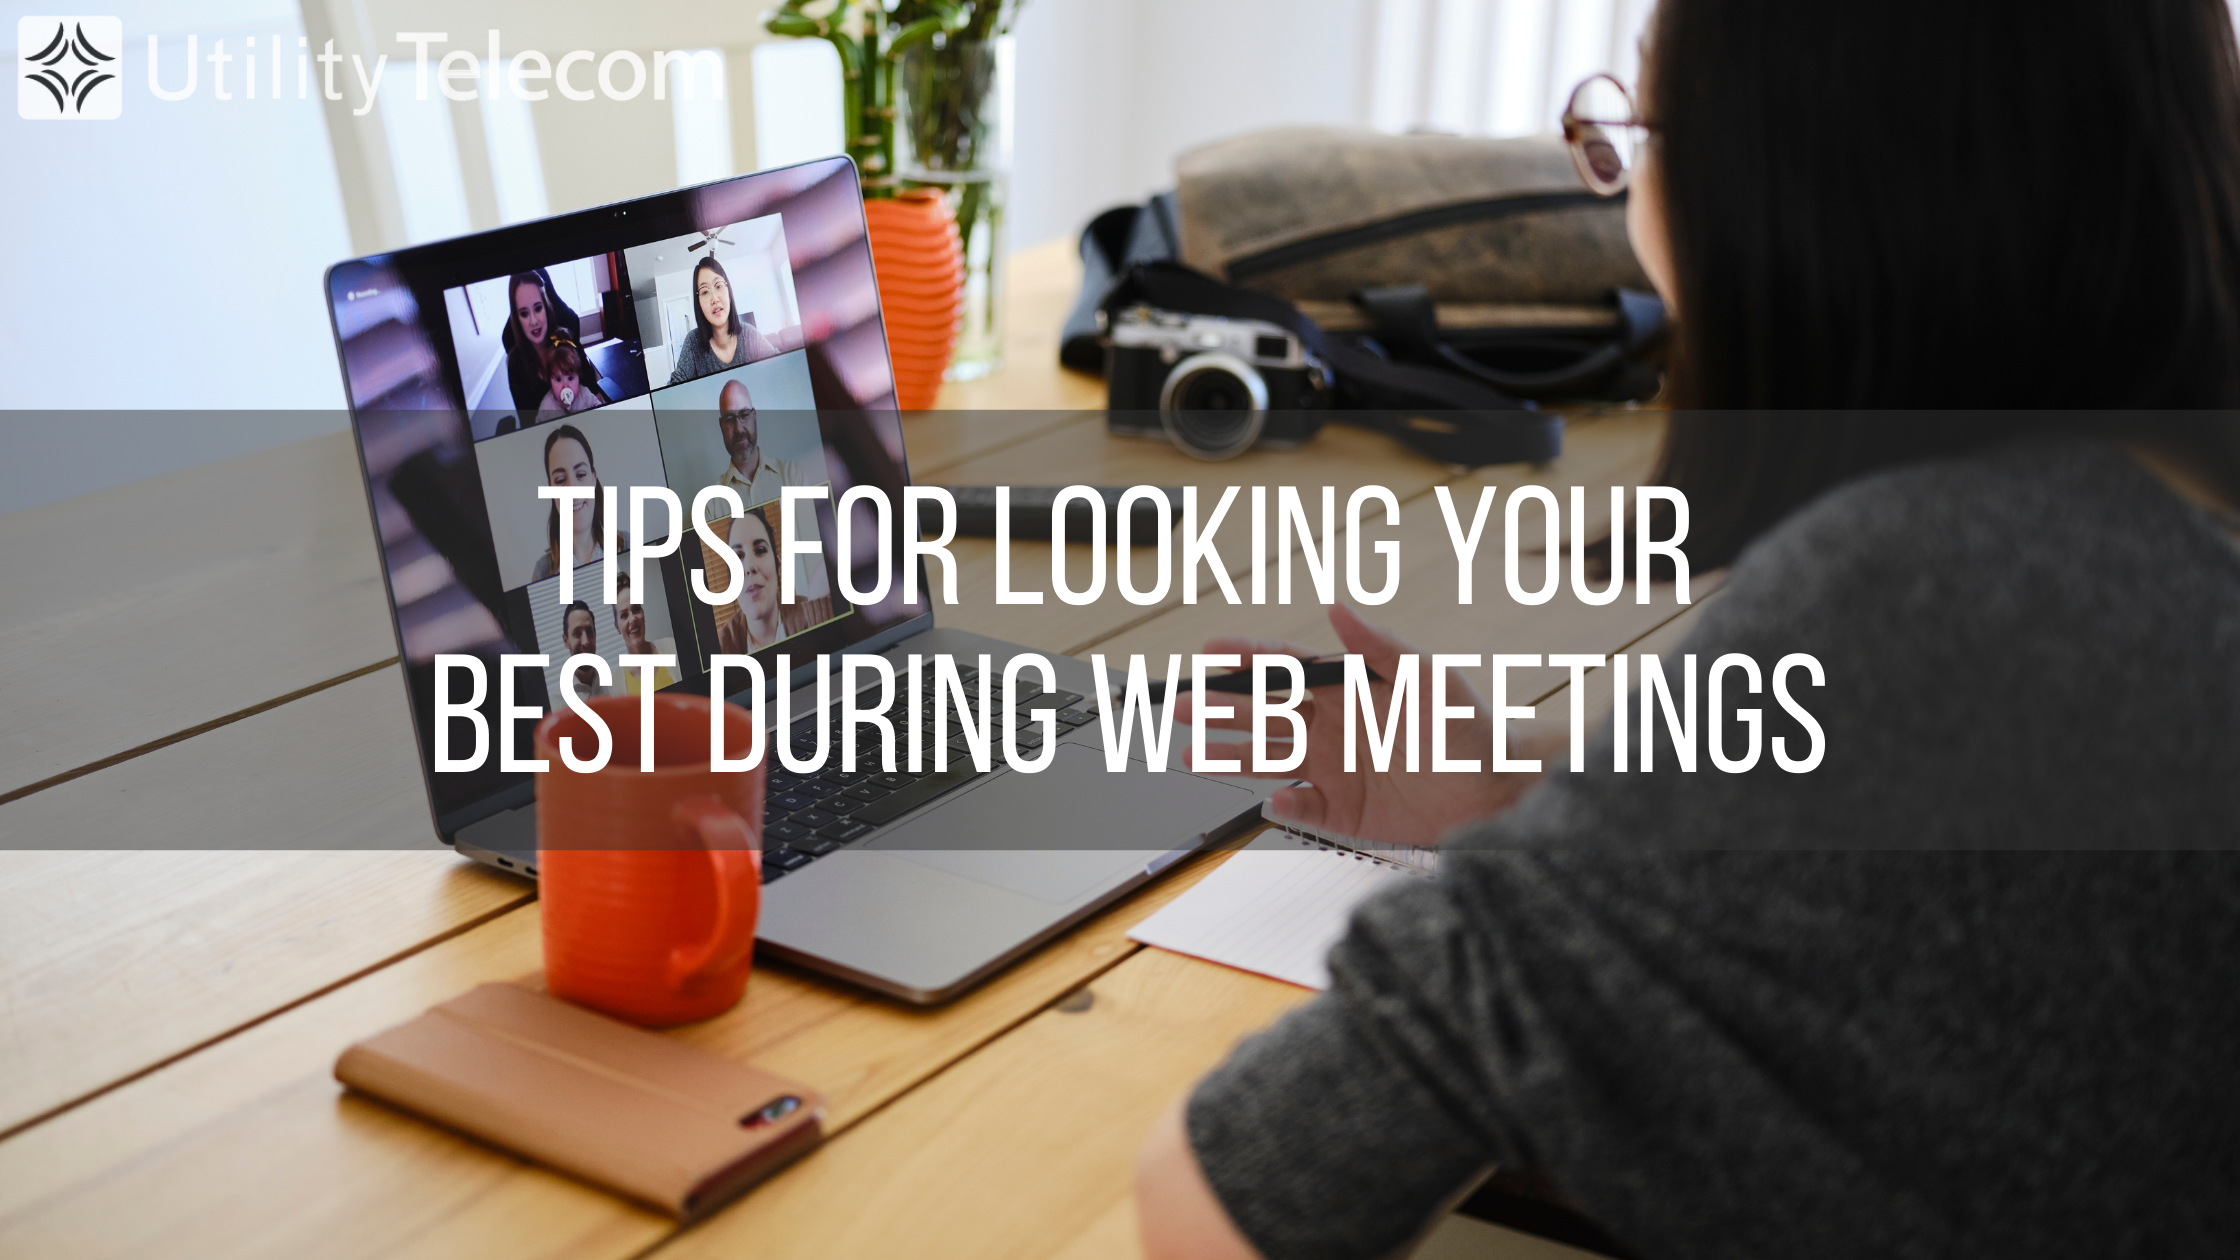 """Woman looking at laptop during a web conference with a text overlay that reads """"Tips for looking your best during web meetings"""""""